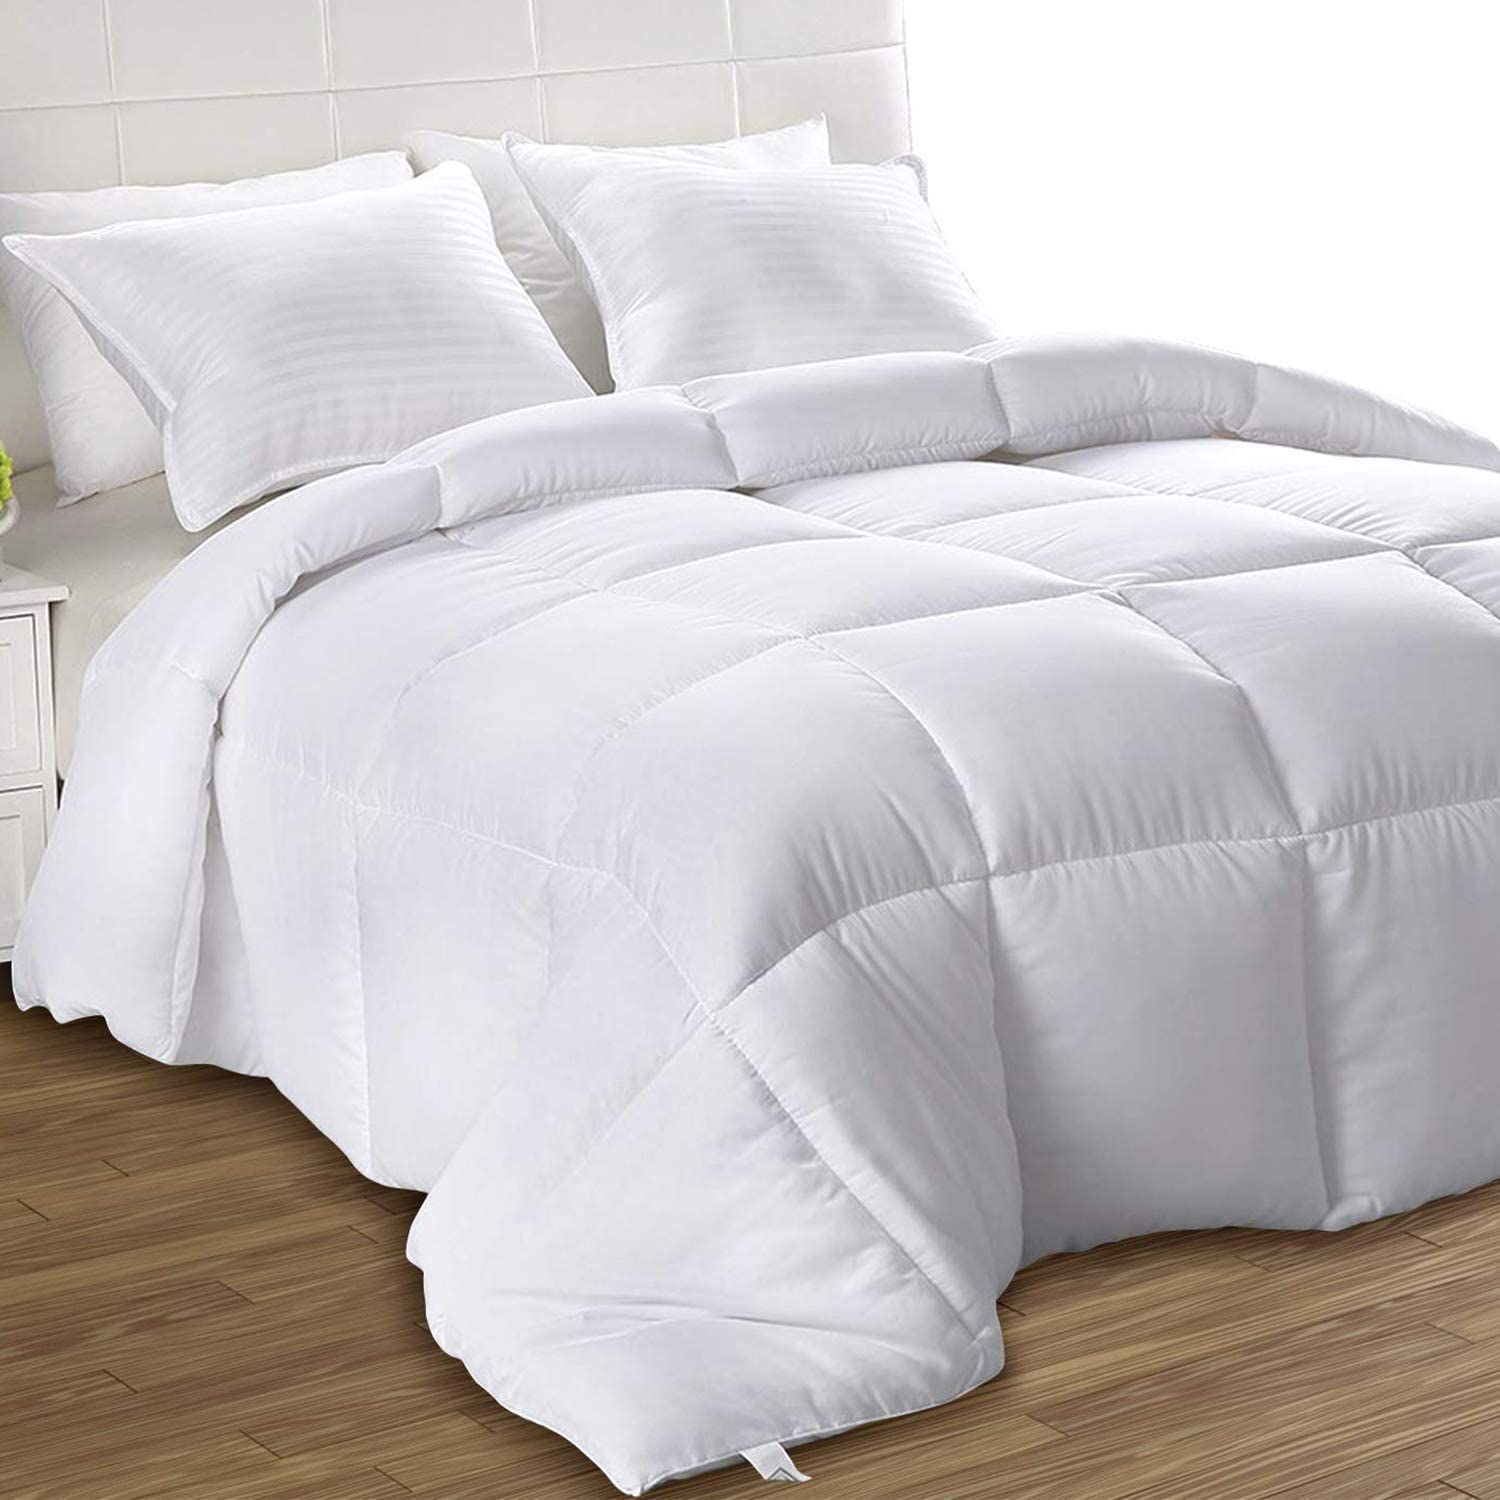 Amazon Com Utopia Bedding Down Alternative Comforter Queen White All Season Comforter Plush Siliconized Fiberfill Duvet Insert Box Stitched Home Kitchen